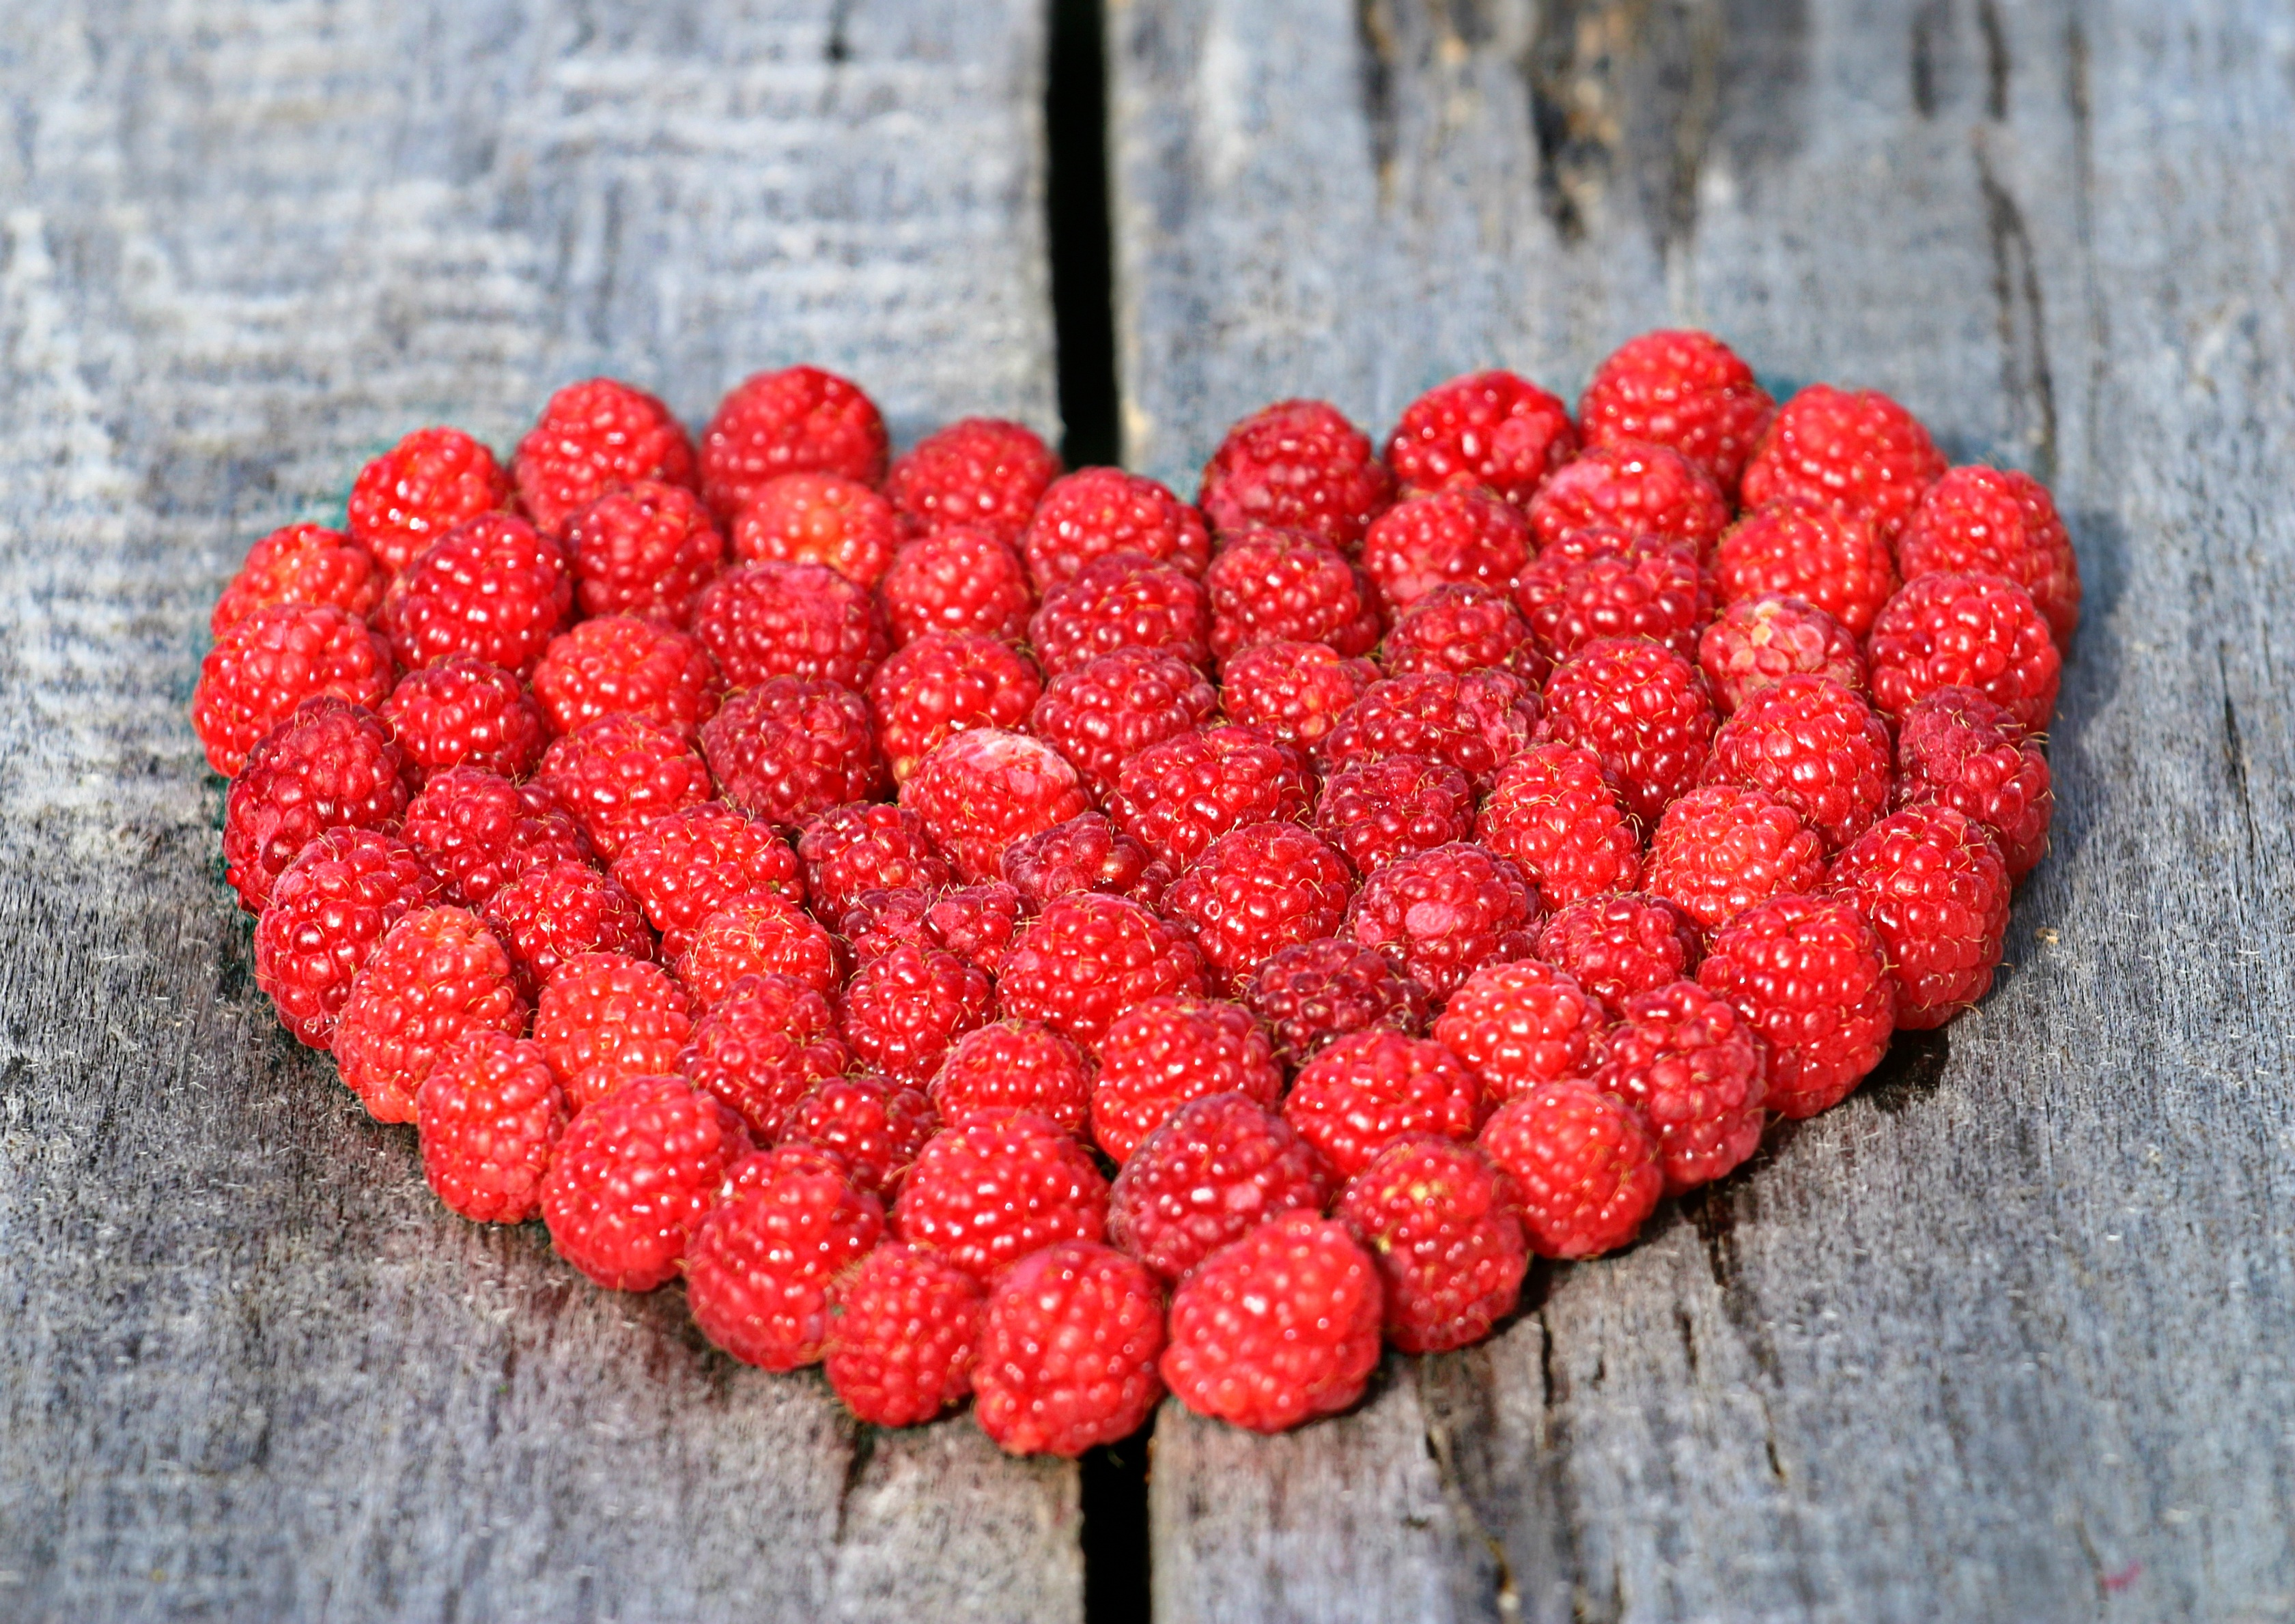 128143 download wallpaper Food, Raspberry, Heart, Wood Surface, Wooden Surface, Berries screensavers and pictures for free